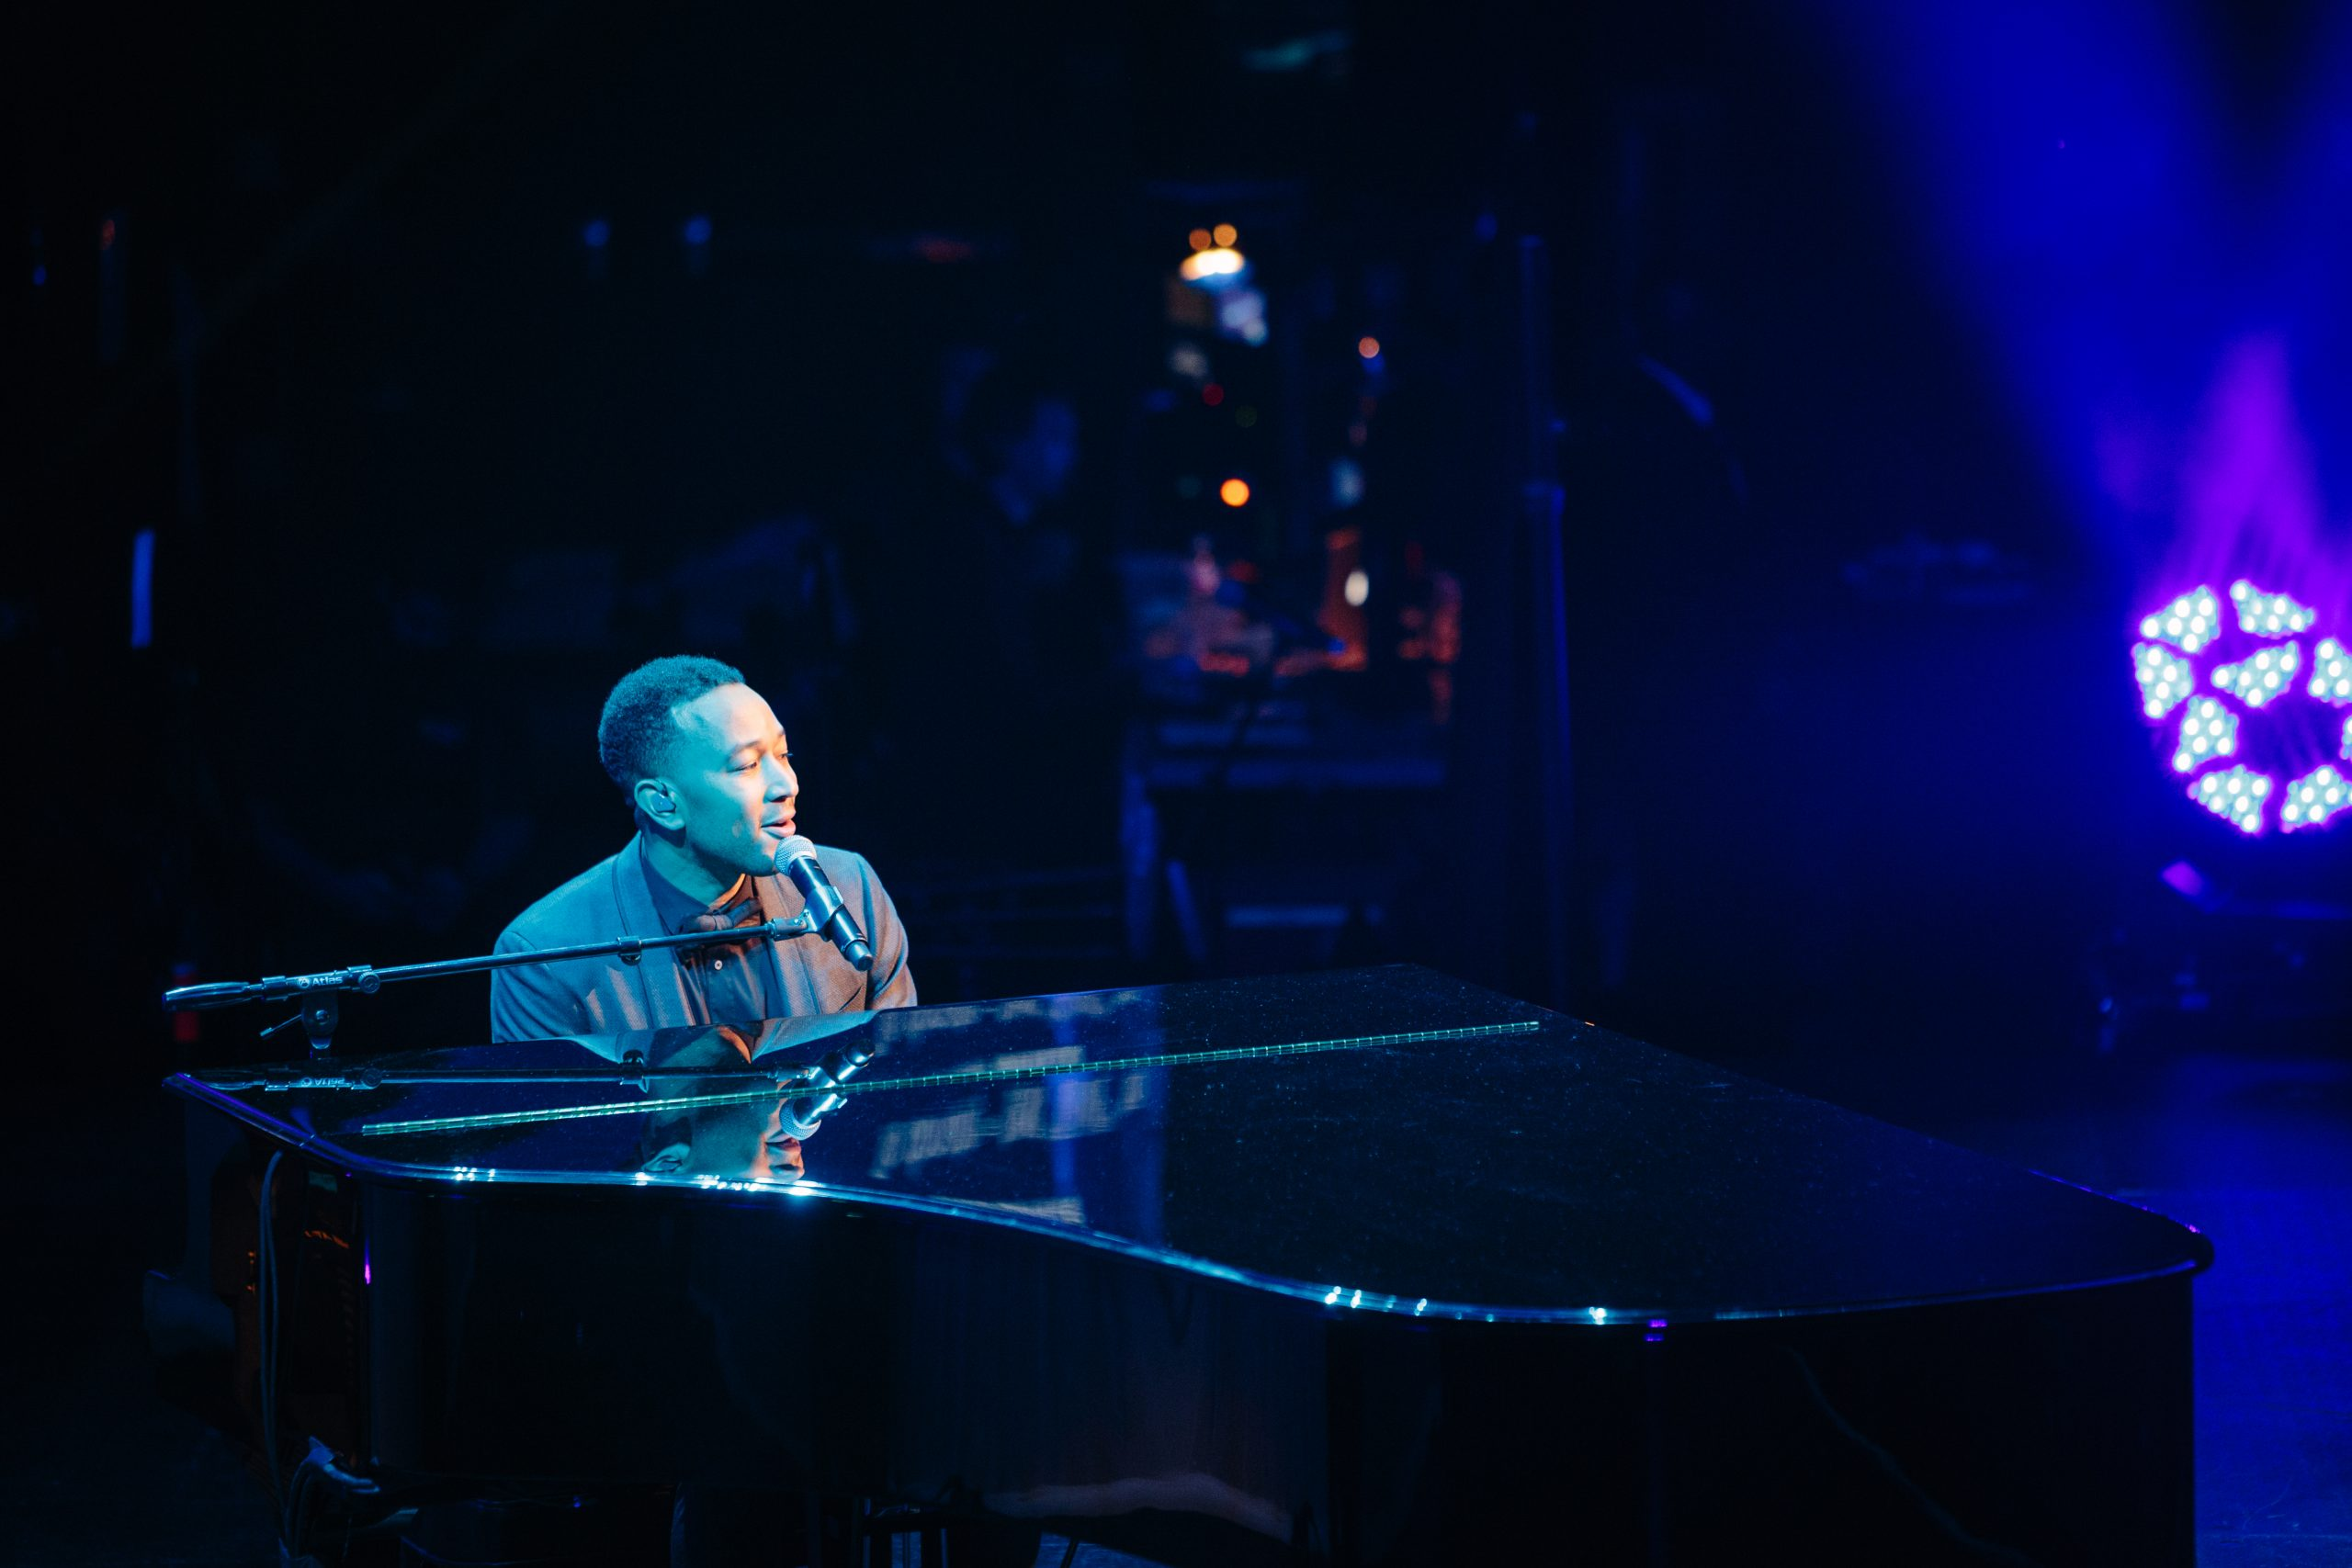 John Legend performing at the 2017 Andy Roddick Foundation Gala at ACL Live